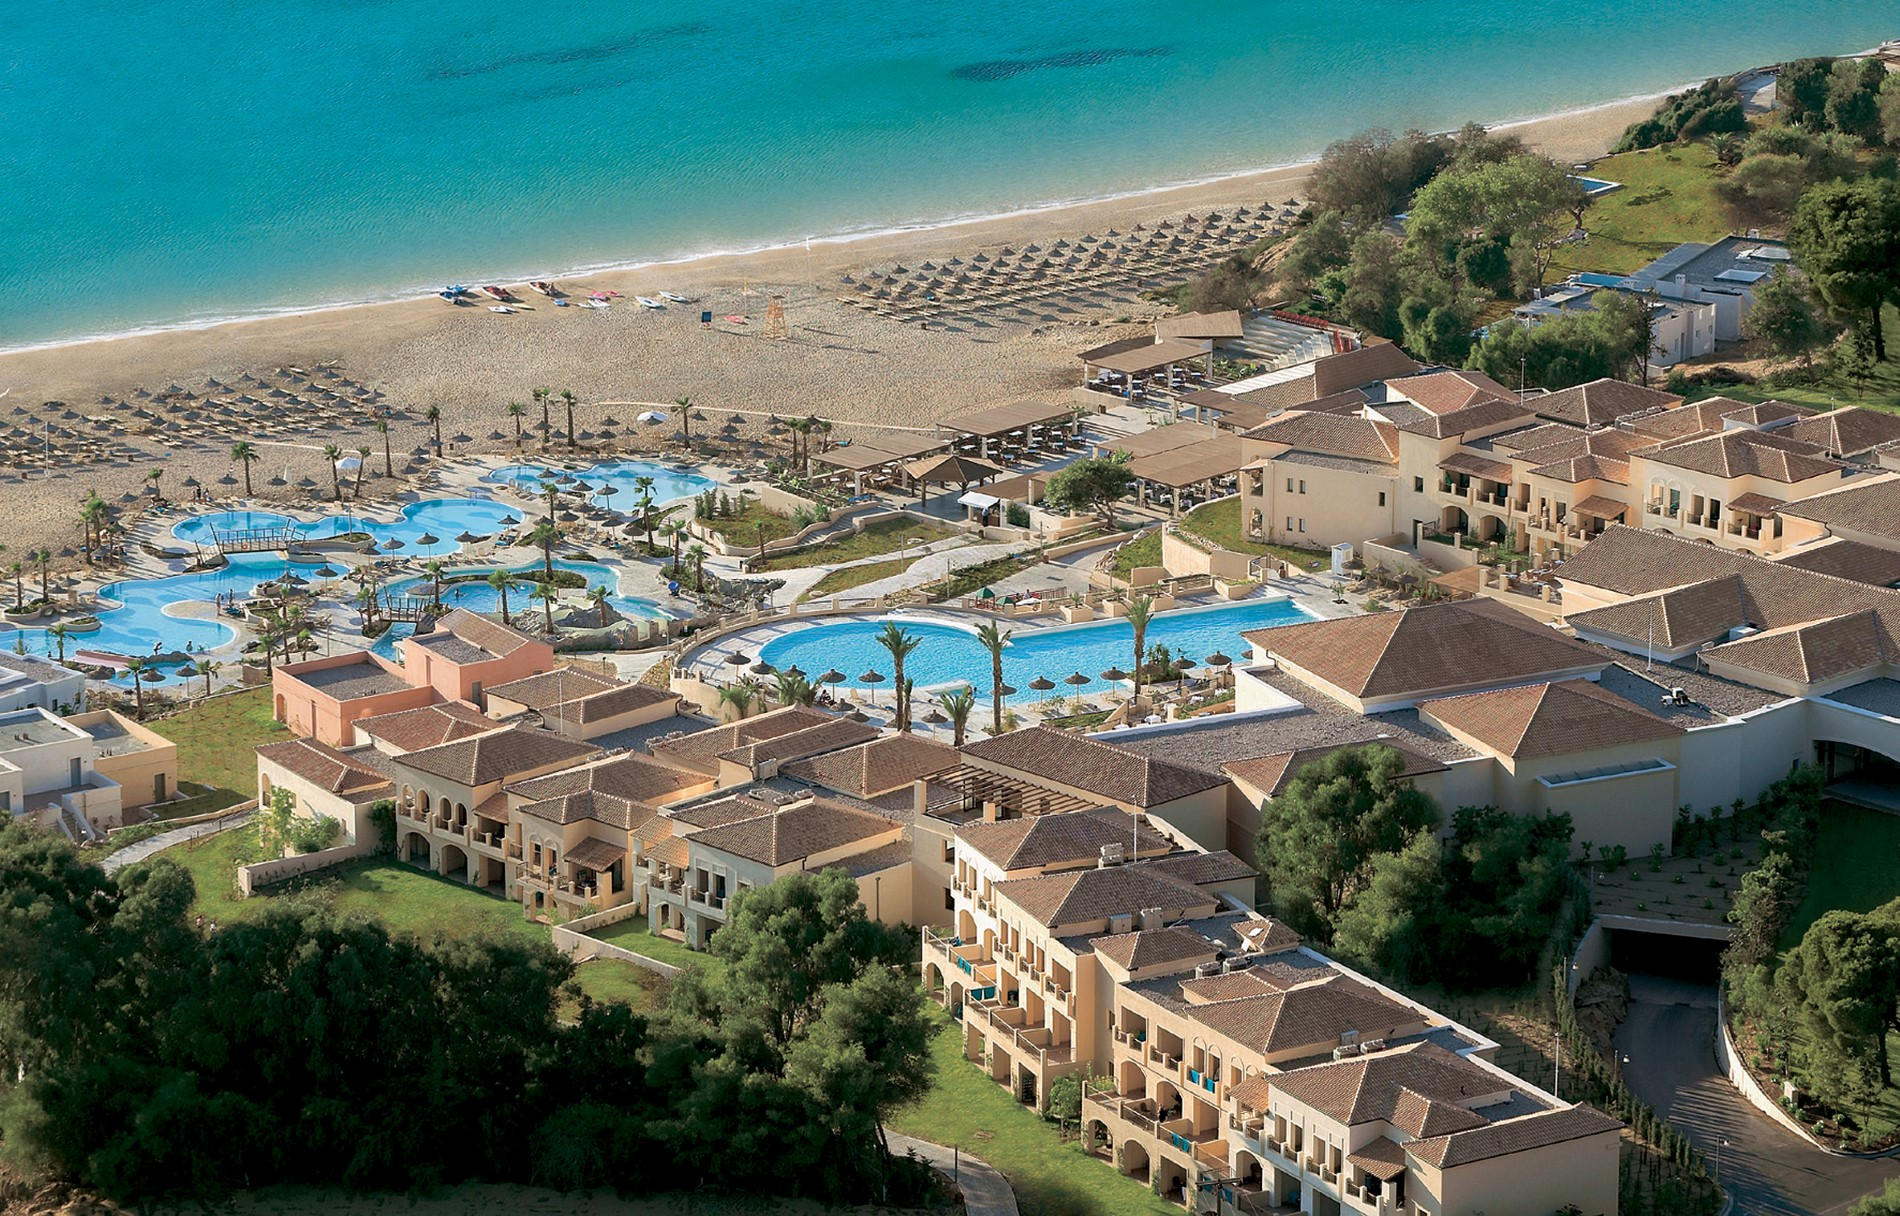 Grecotel Olympia Riviera, Luxury hotel complex, Killini, Peloponnese*in cooperation with W.A.T.G.